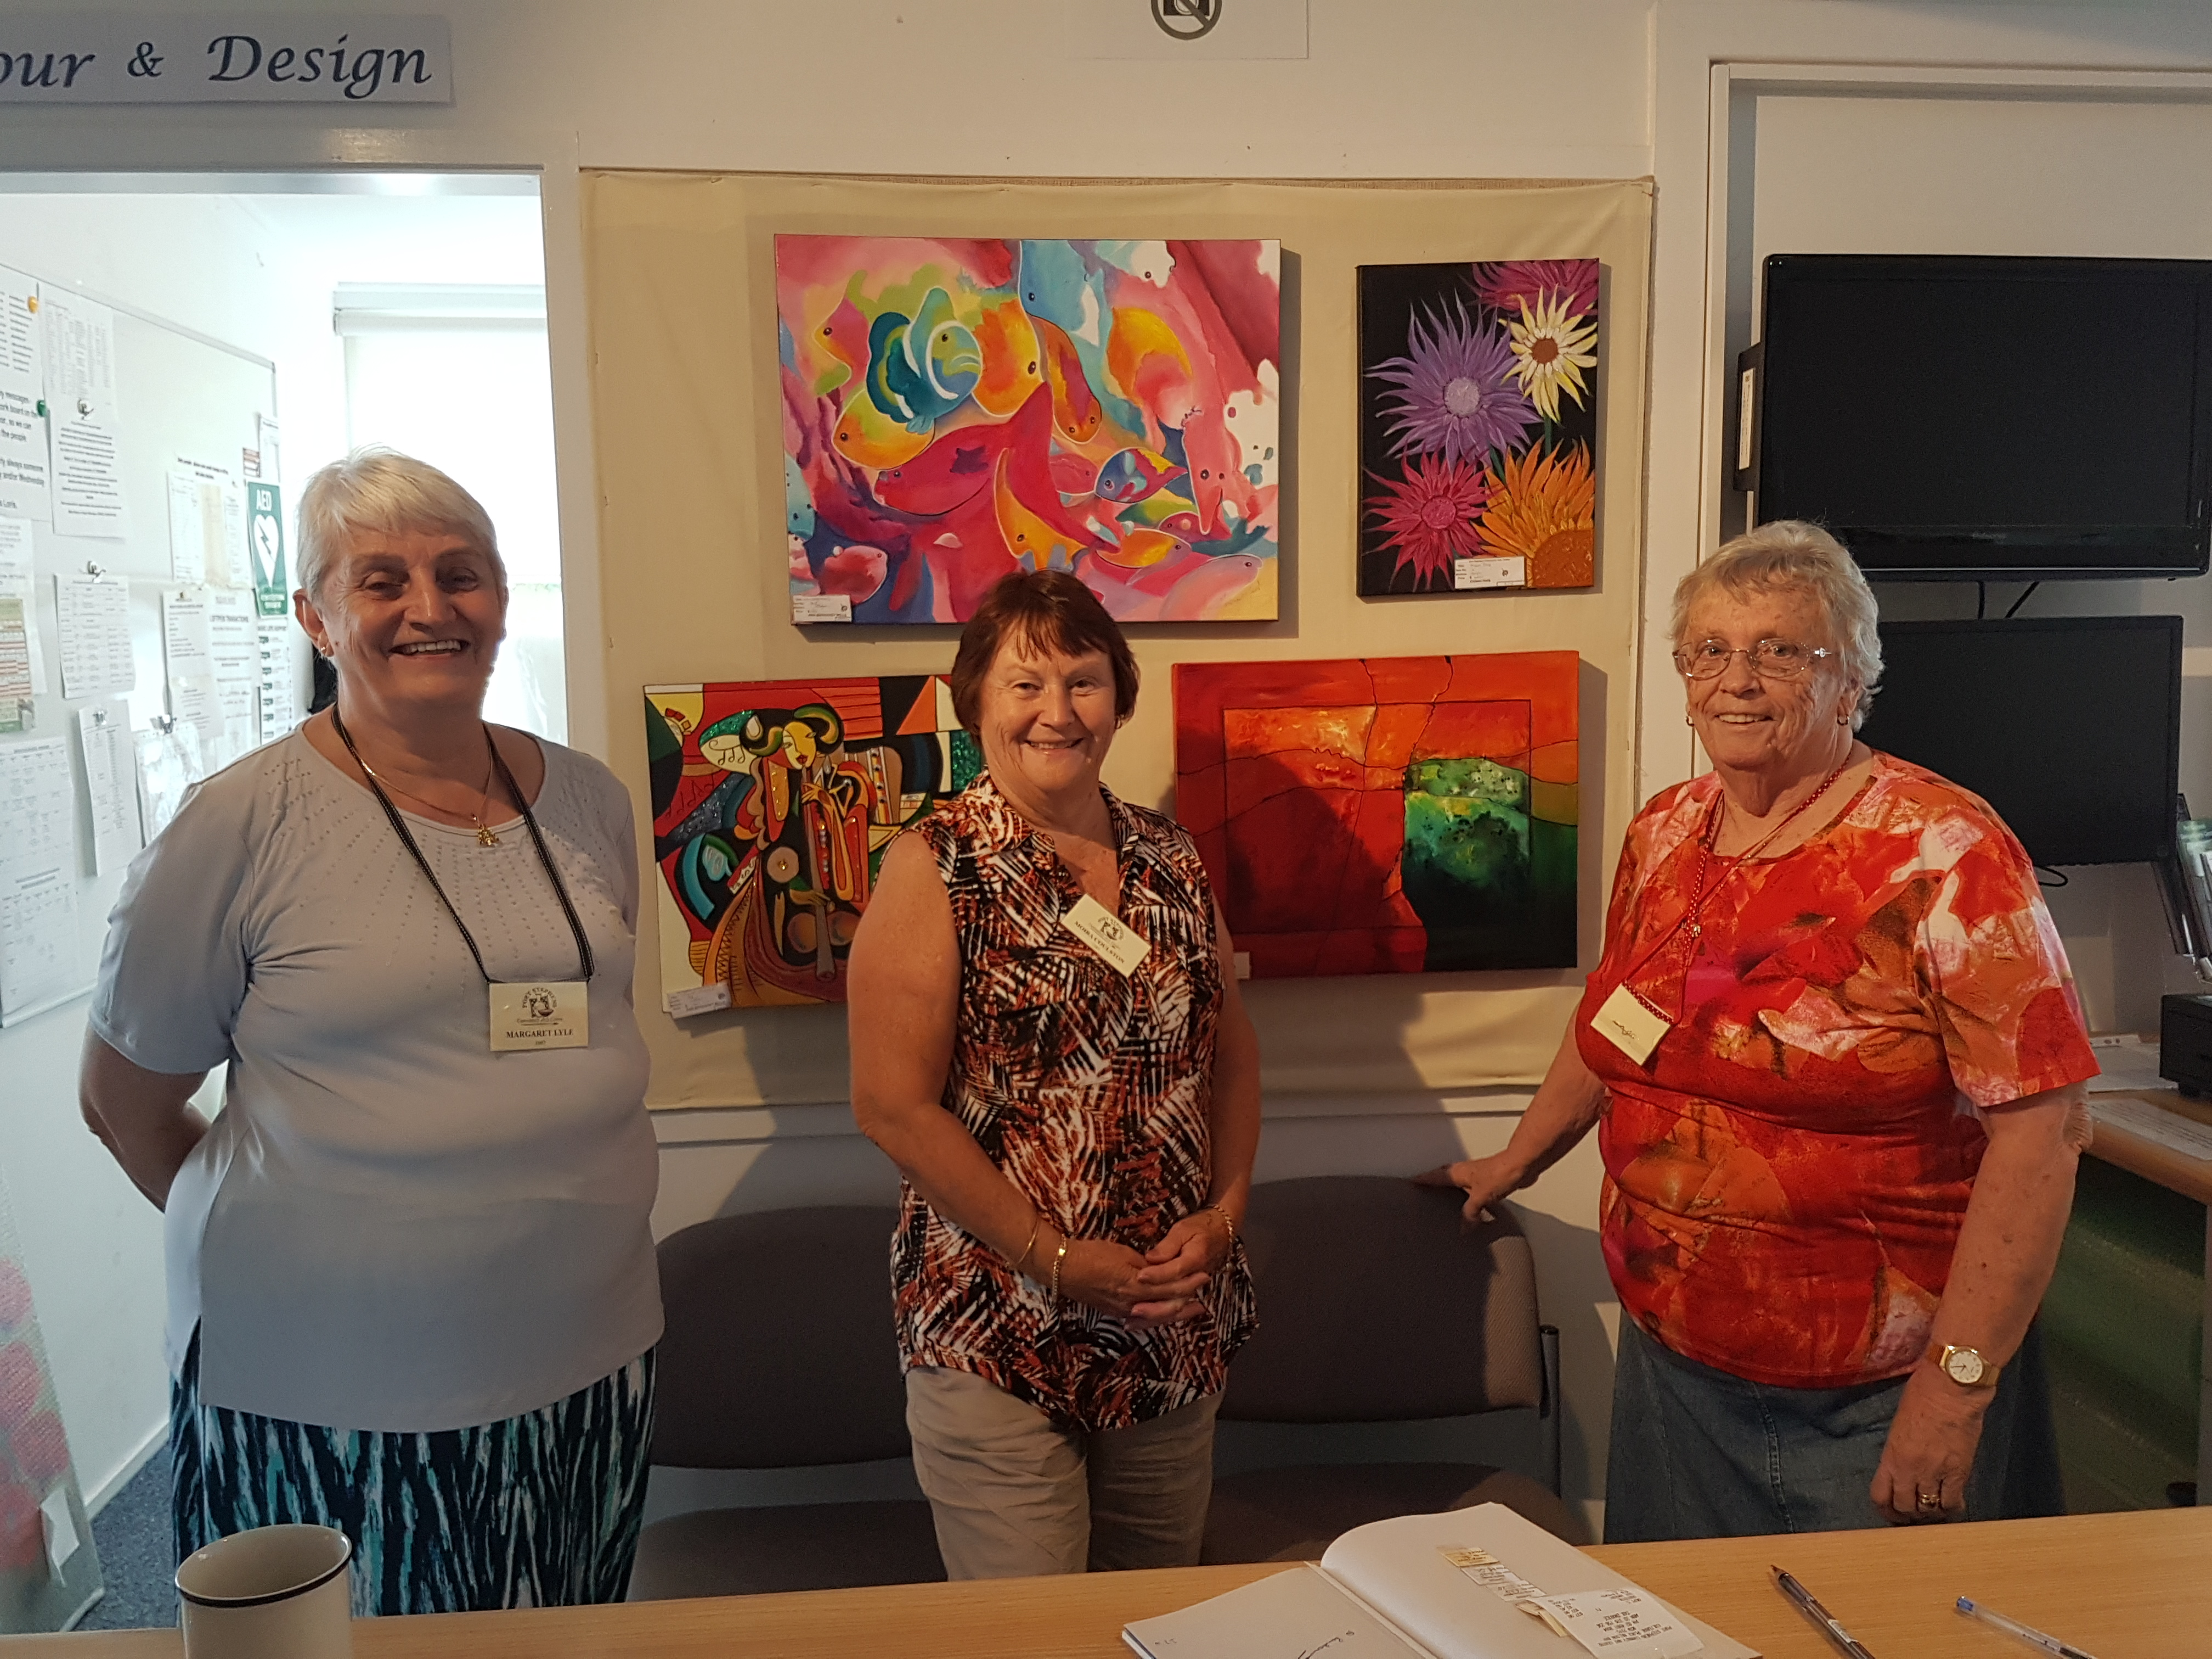 Margaret Lyle, Moira Coulston and Doreen Lambourne - at work in the gallery